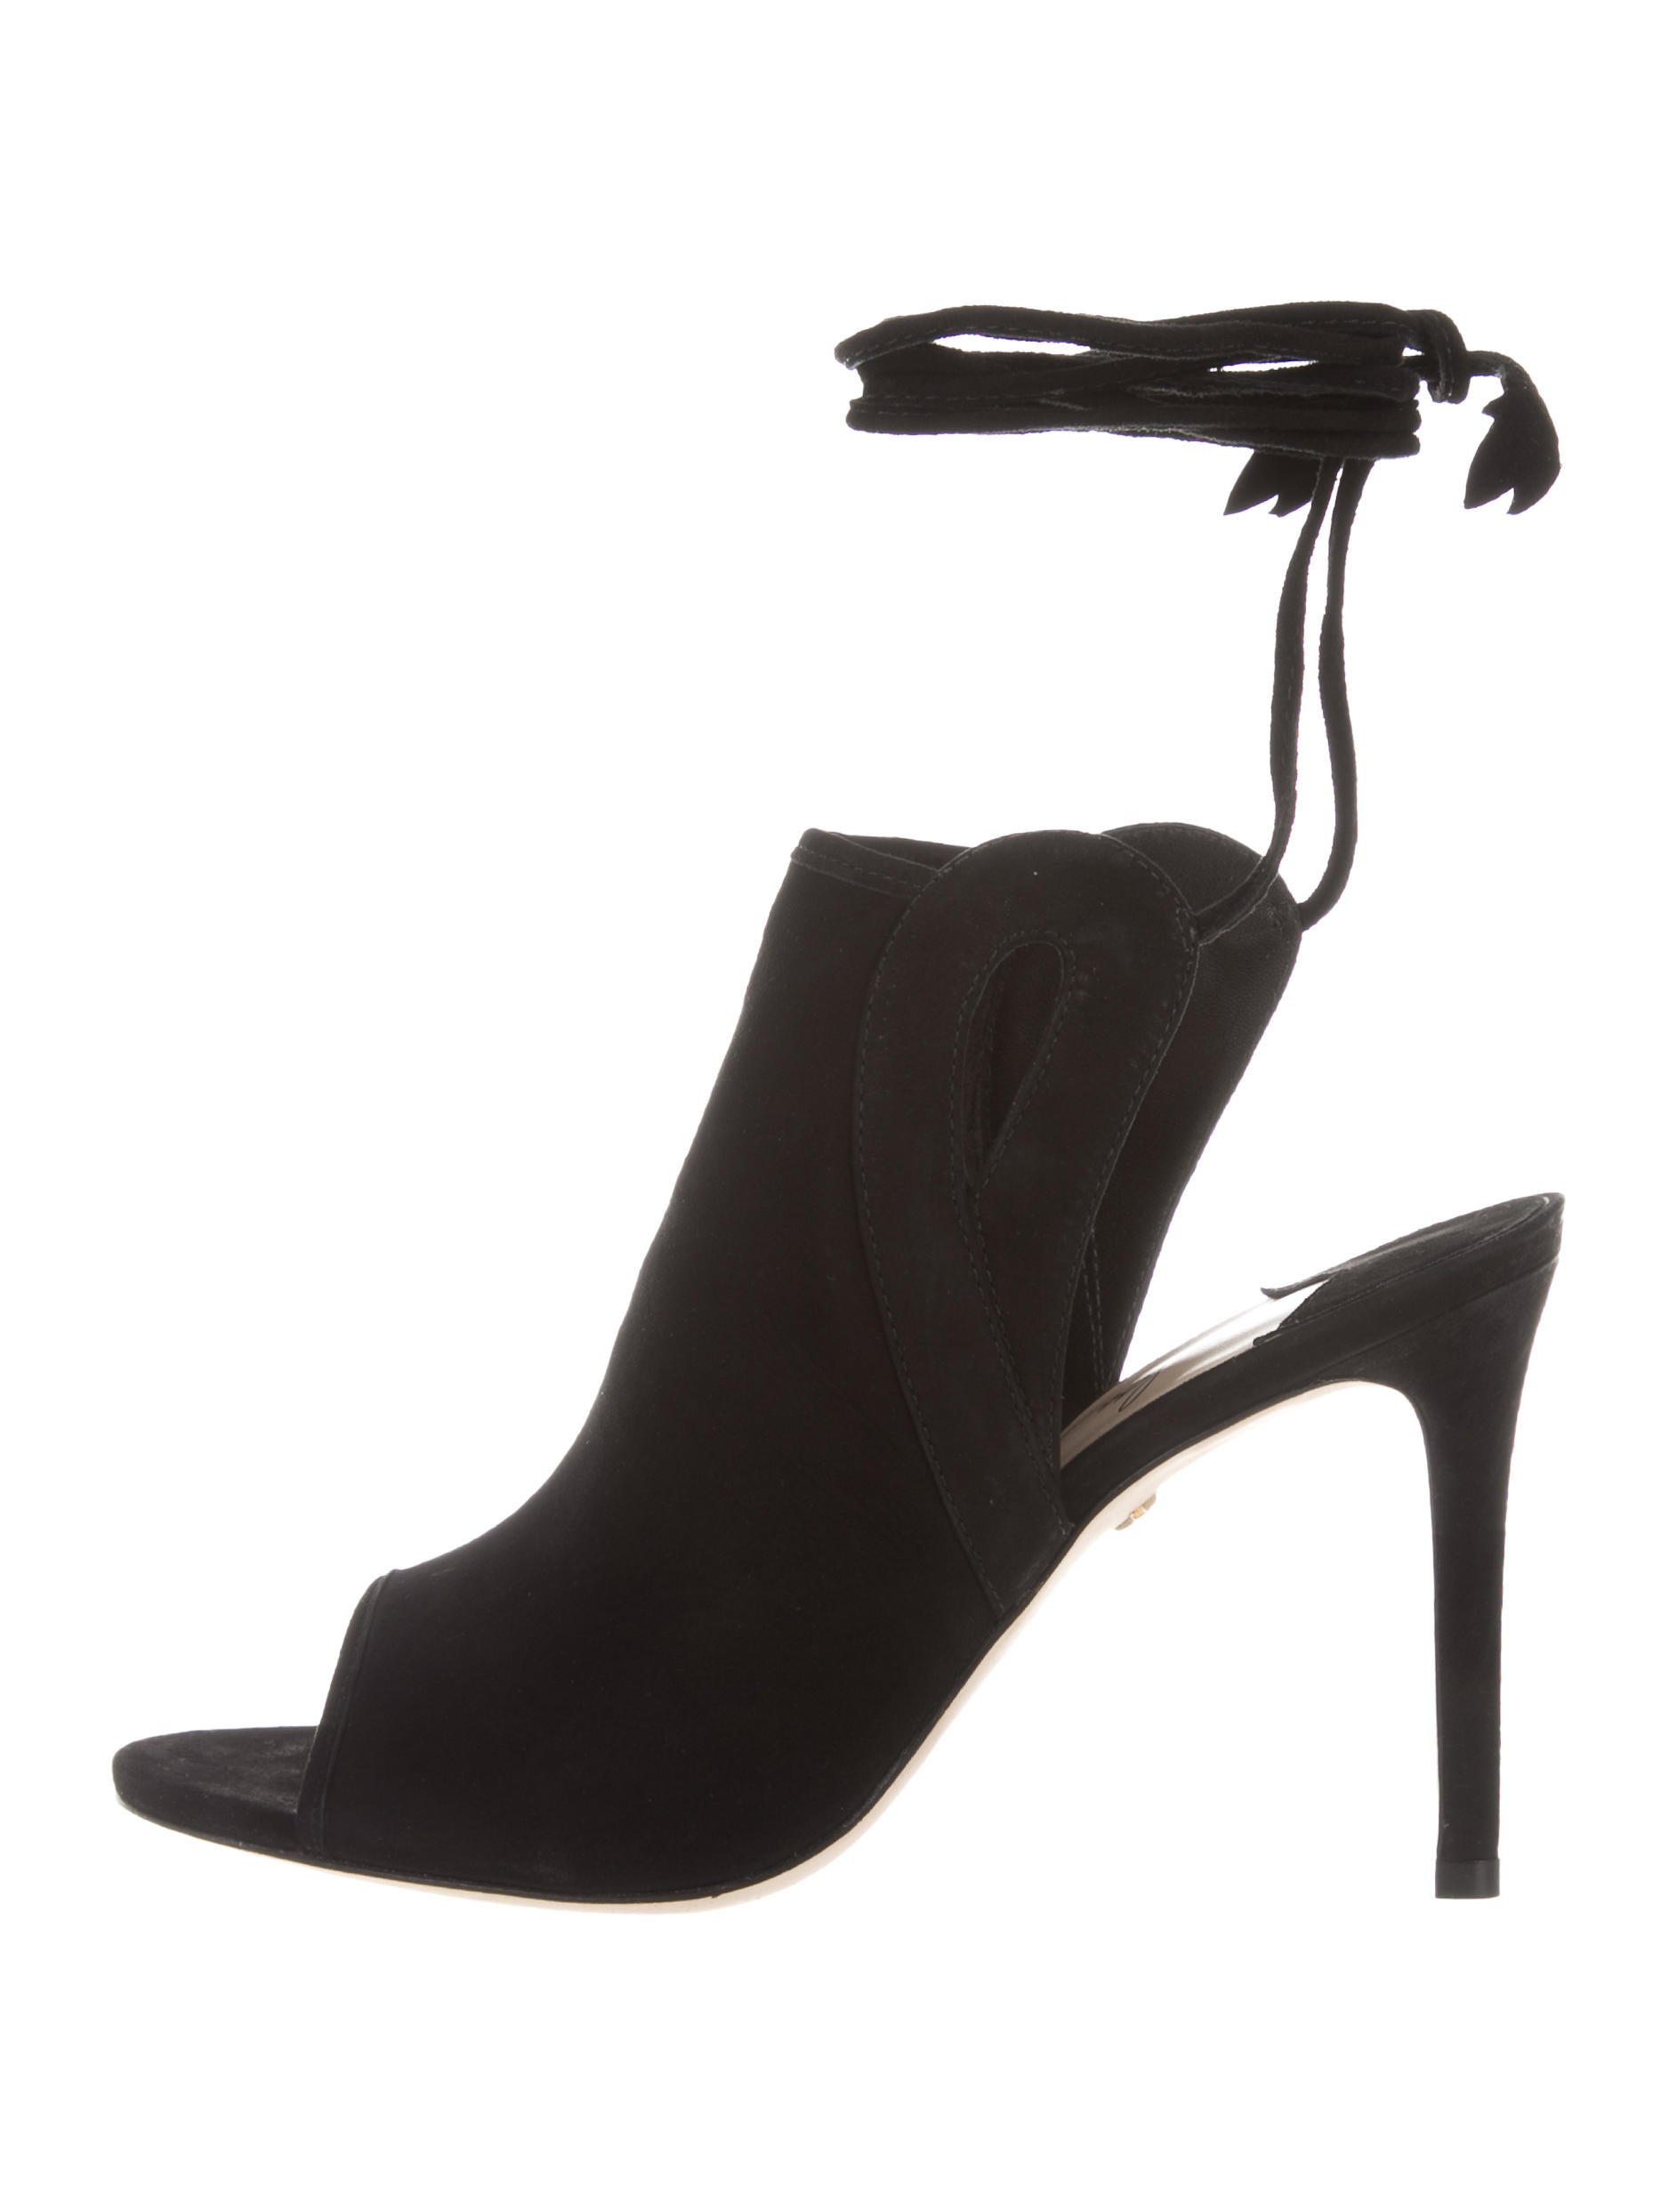 Isa Tapia Ellen High-Heel Sandals outlet wide range of sast for sale explore vCfAP